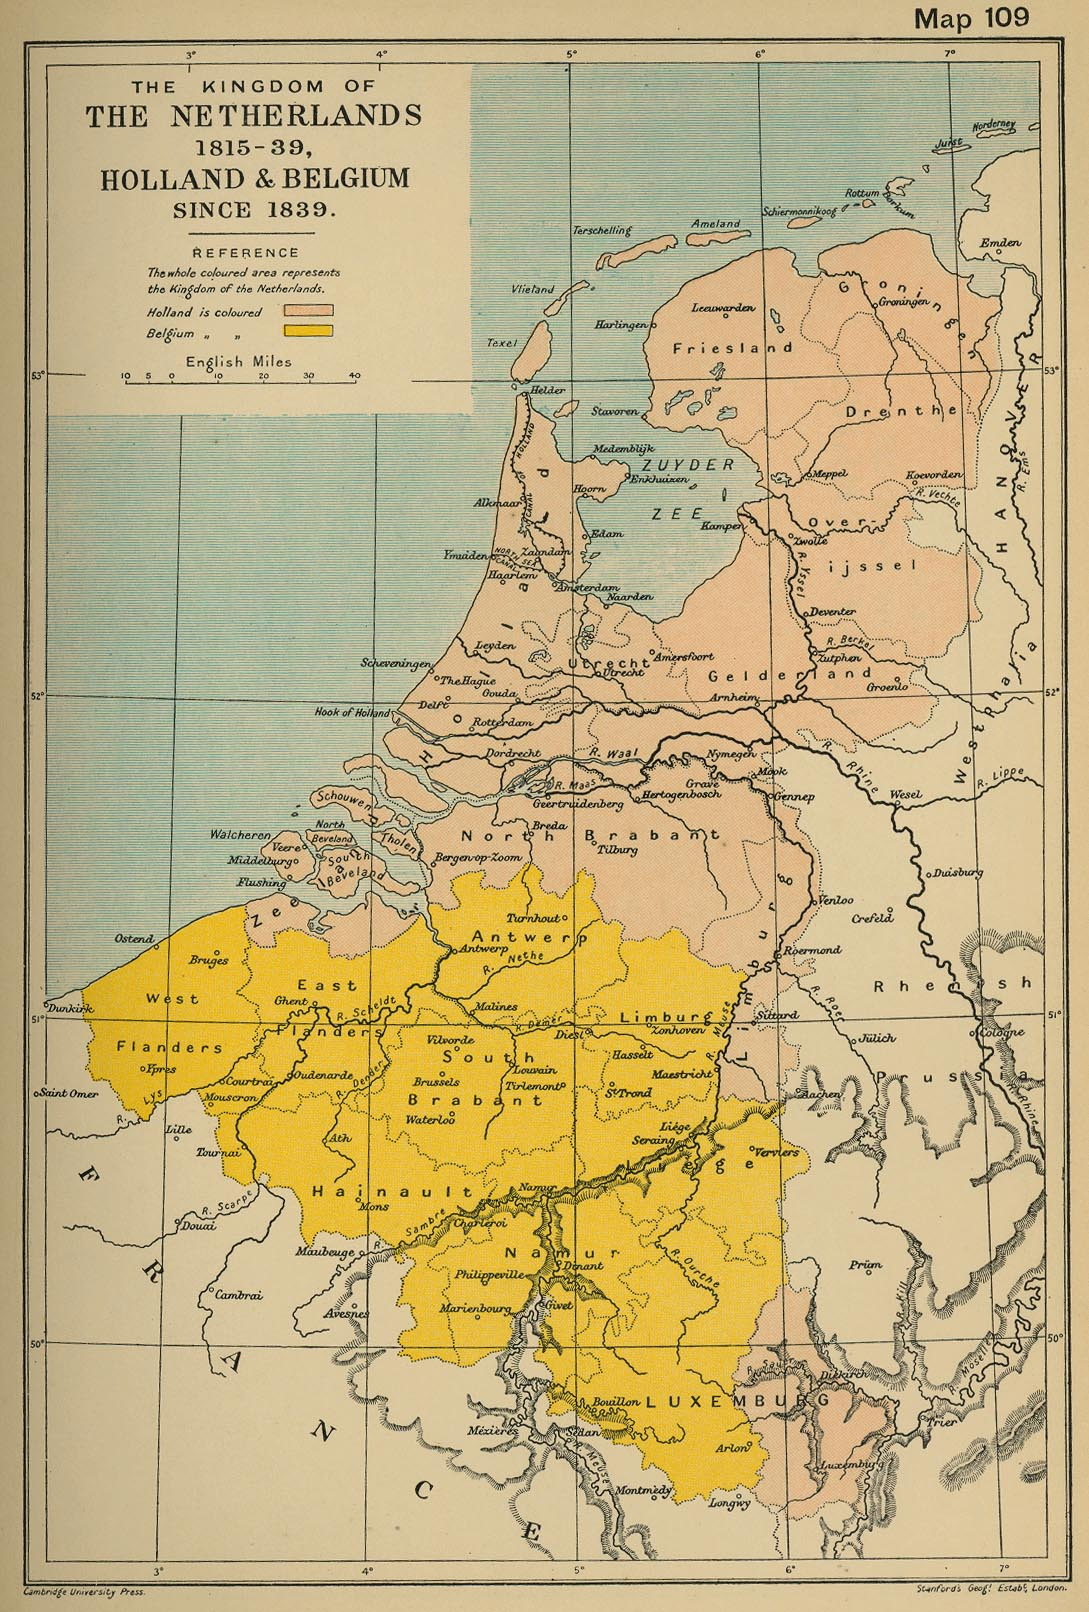 Map of the Netherlands 1815-39, Holland and Belgium since 1839